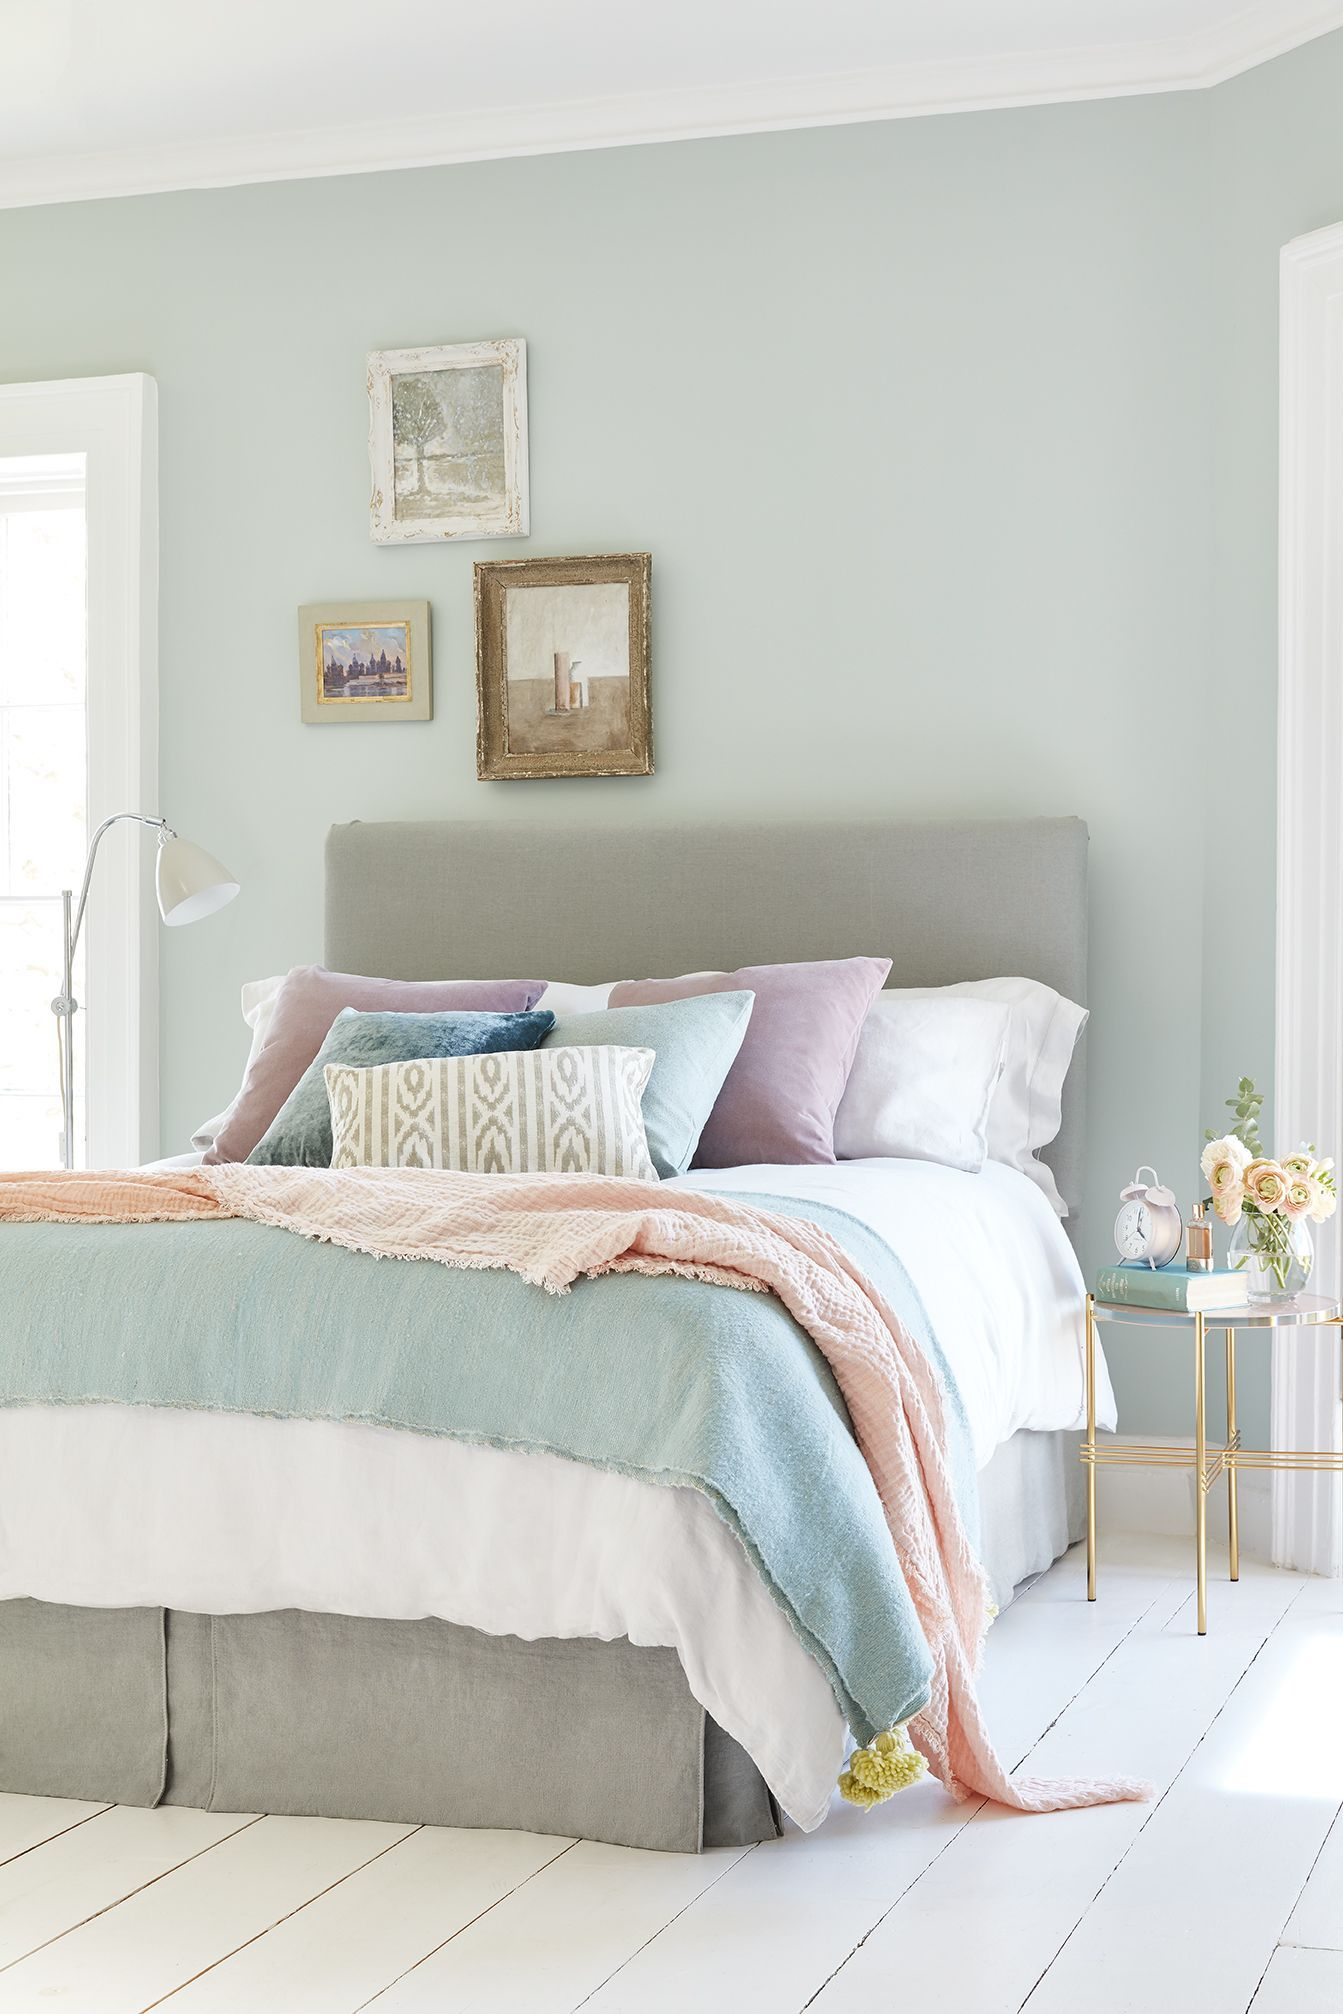 Want To Wake Hening A Drowsy Bedroom Colour Scheme Behind Some Bold Let Us Inspire You Ensue Shiny Burst Of Block Or Pattern Your